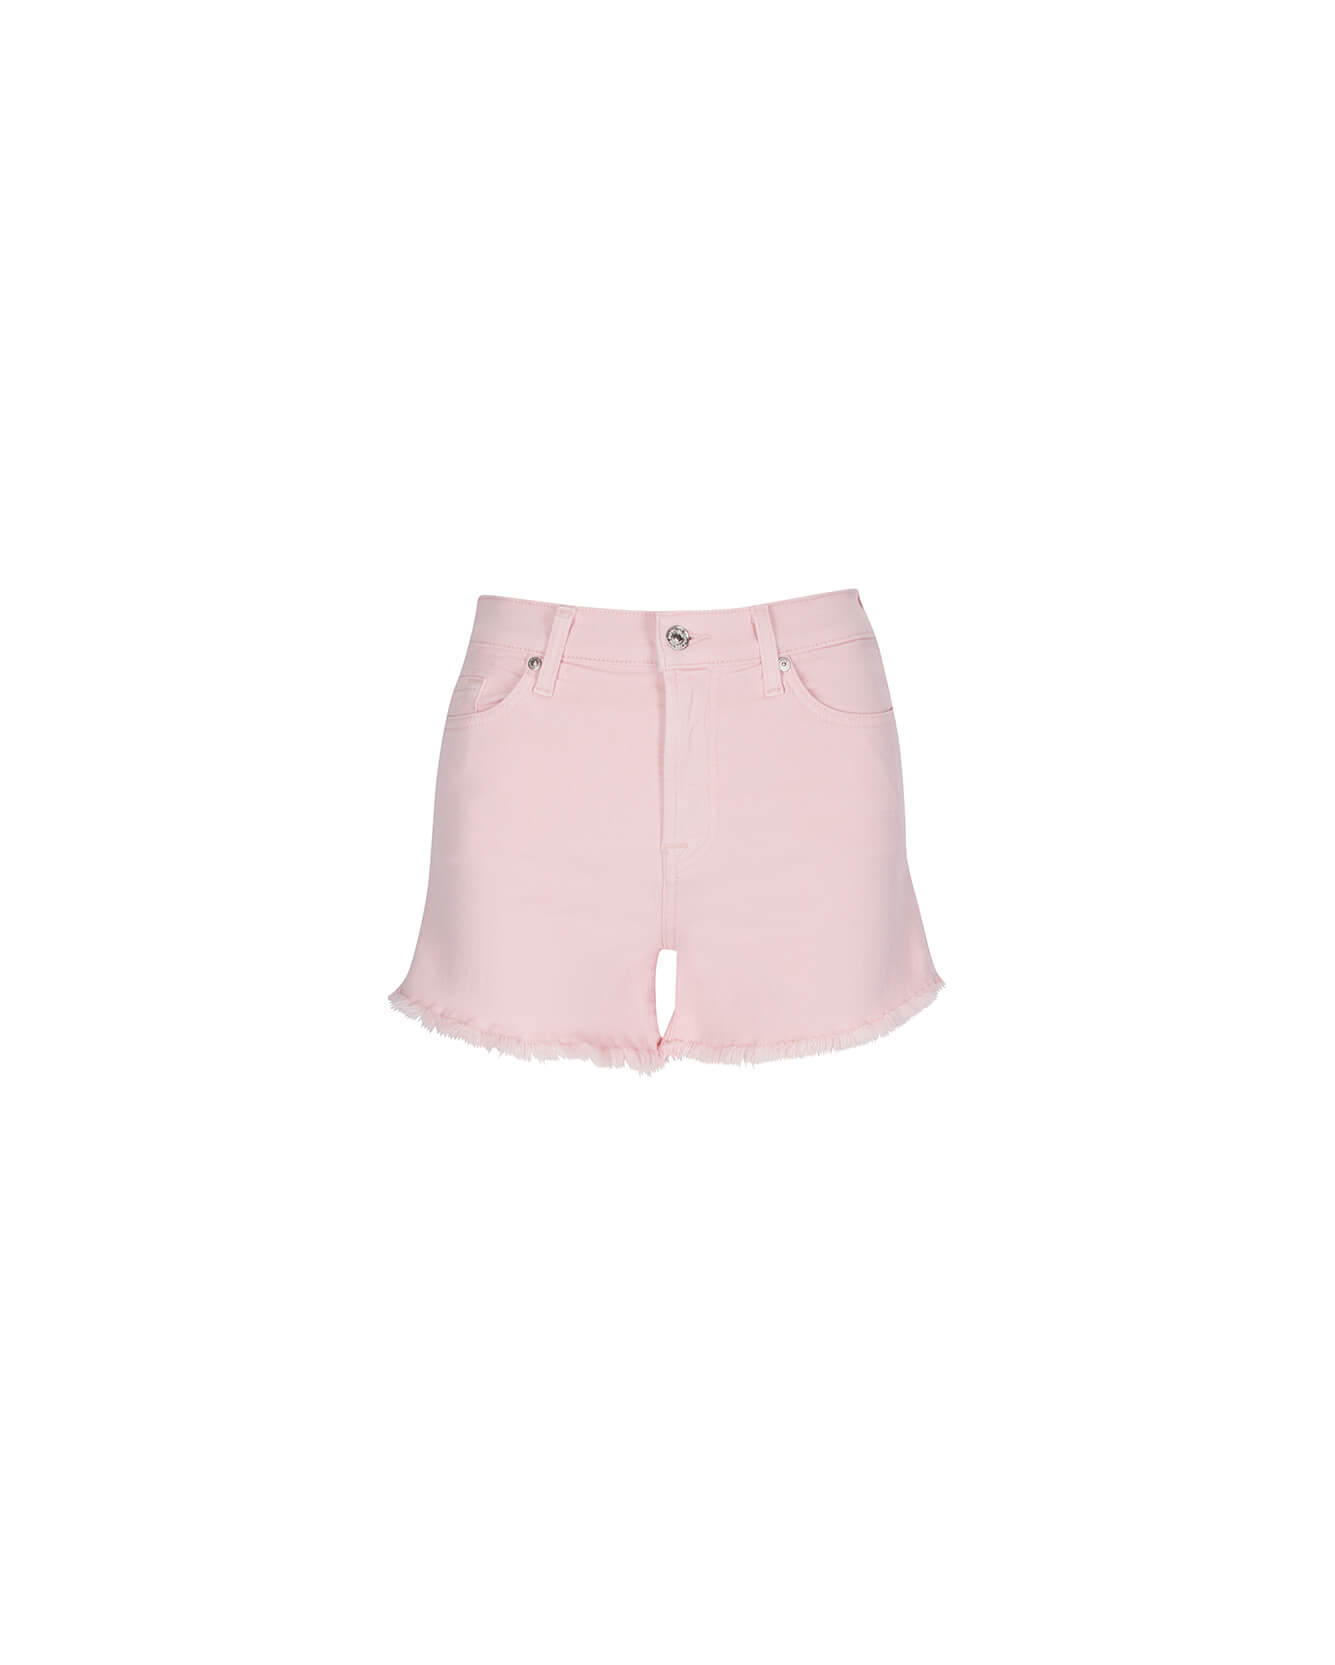 Image of High Waist Short in Peony